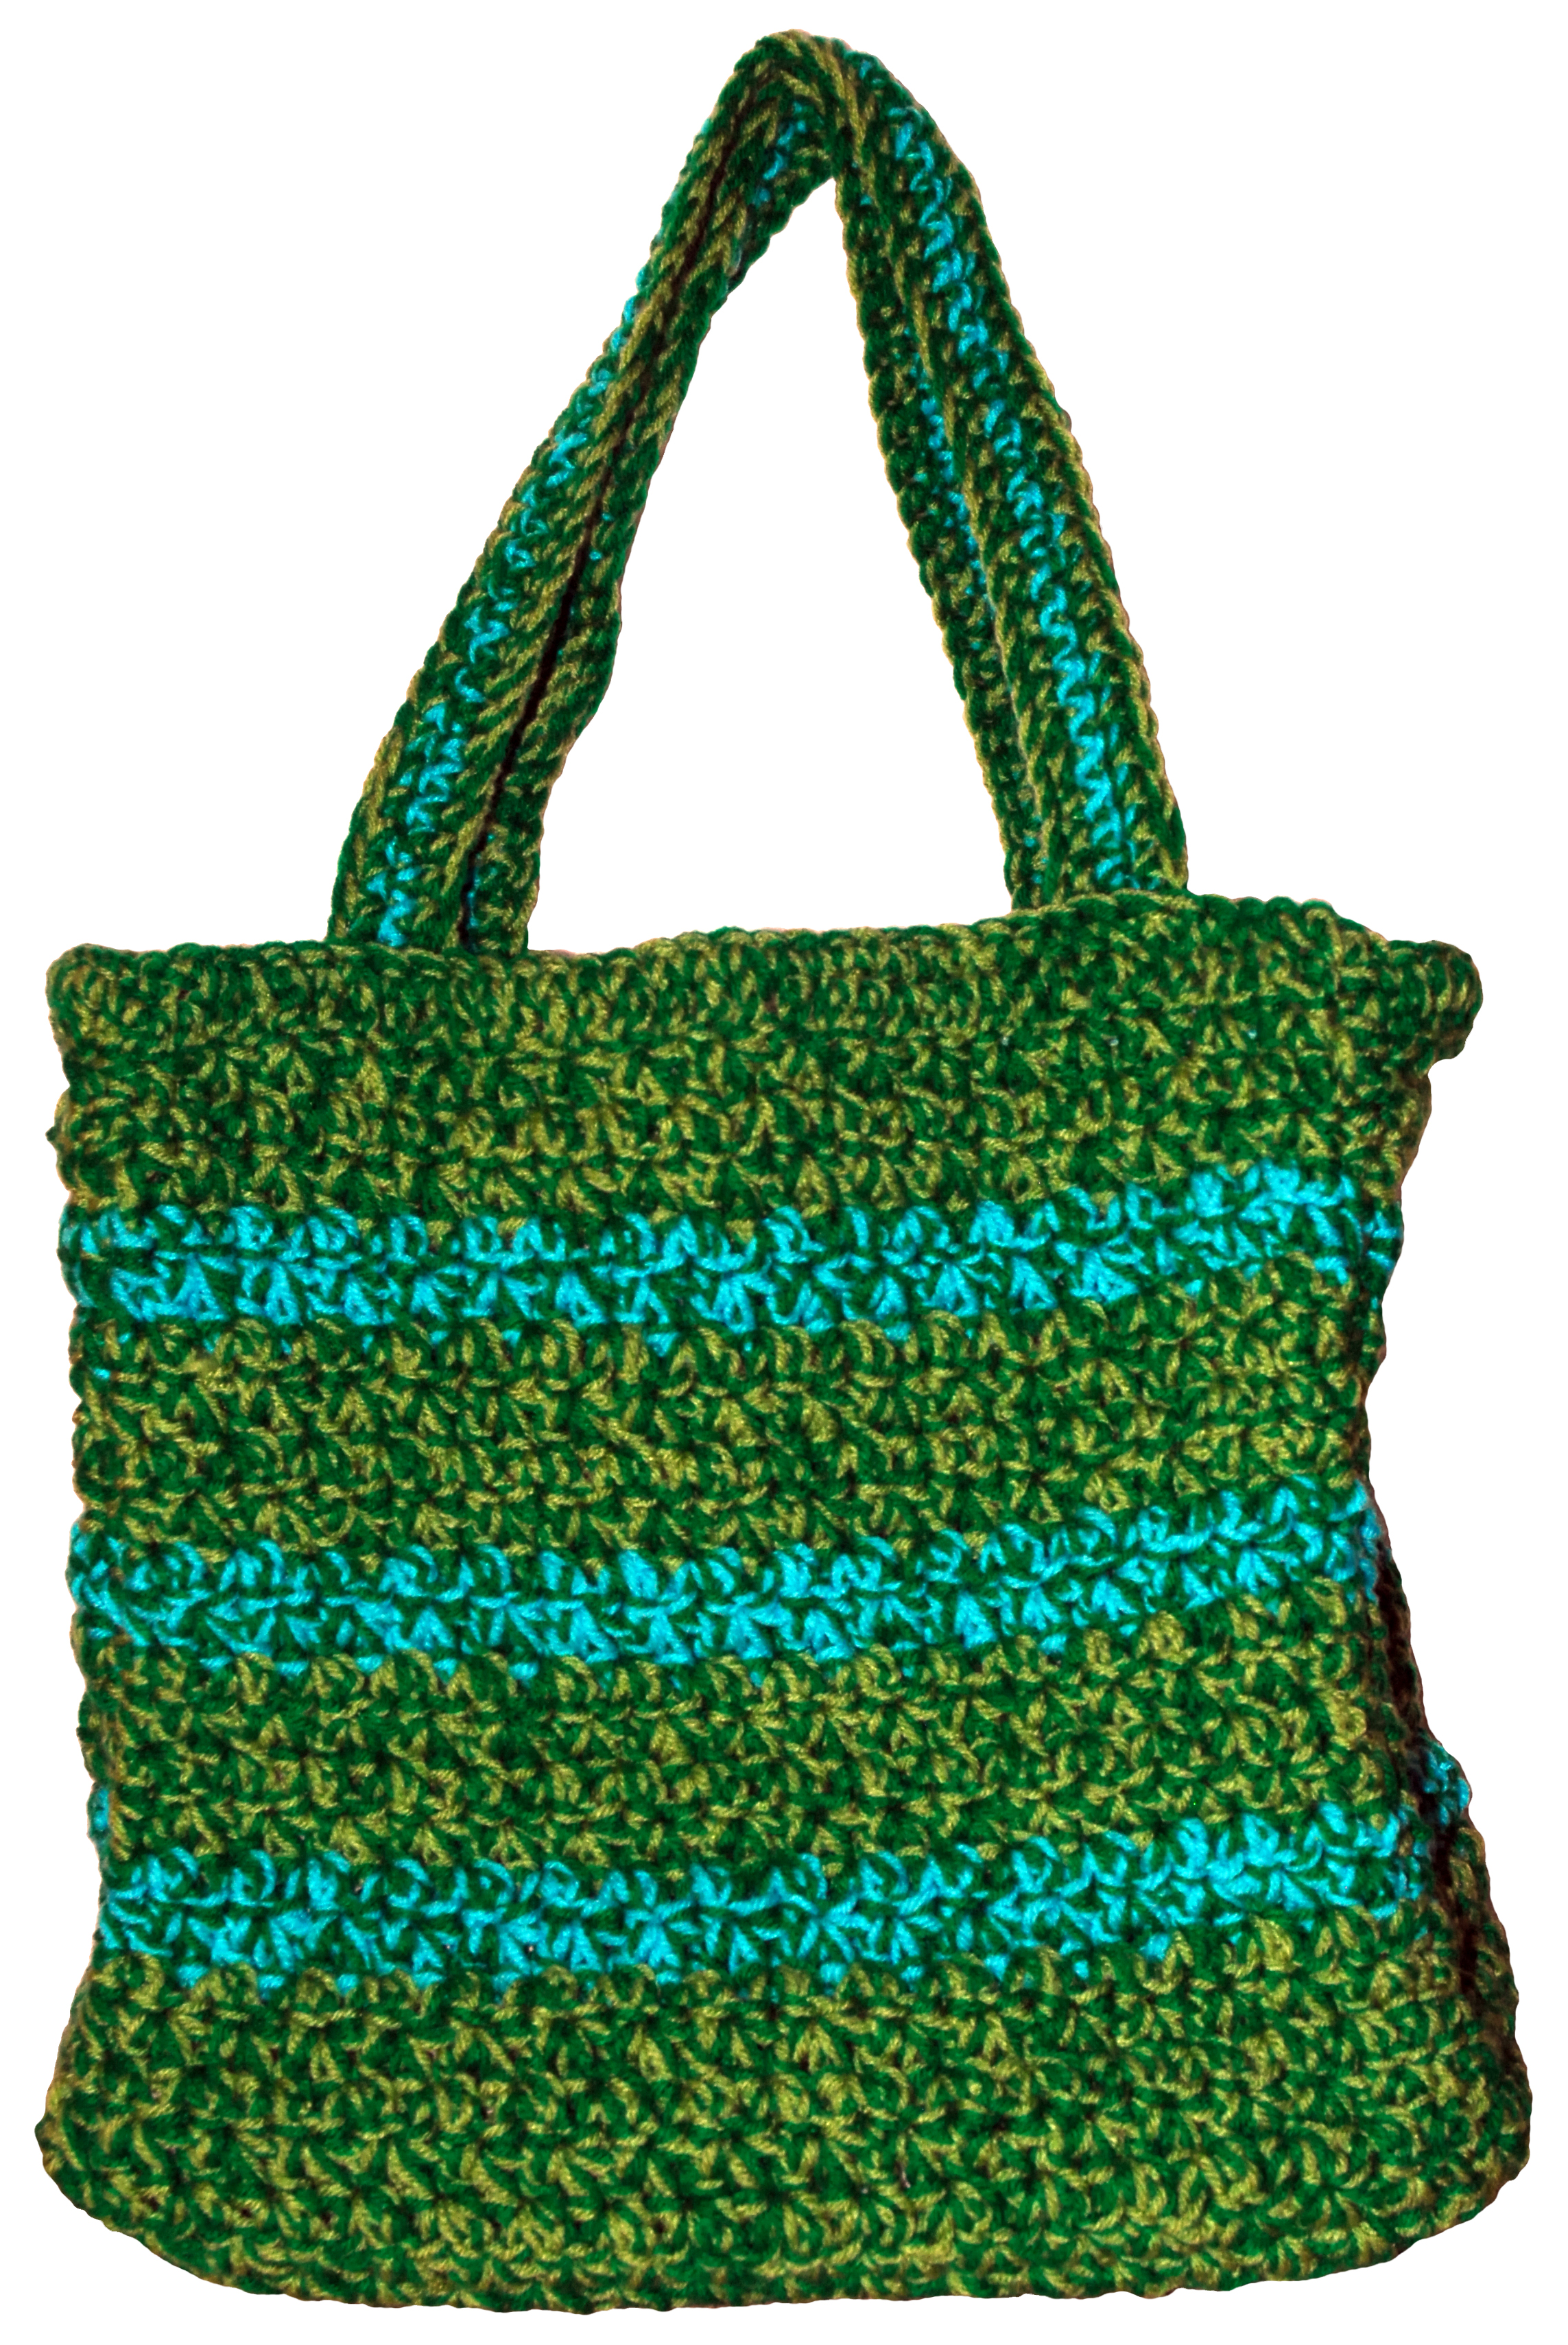 Crochet Bags And Totes : crochet tote - exterior